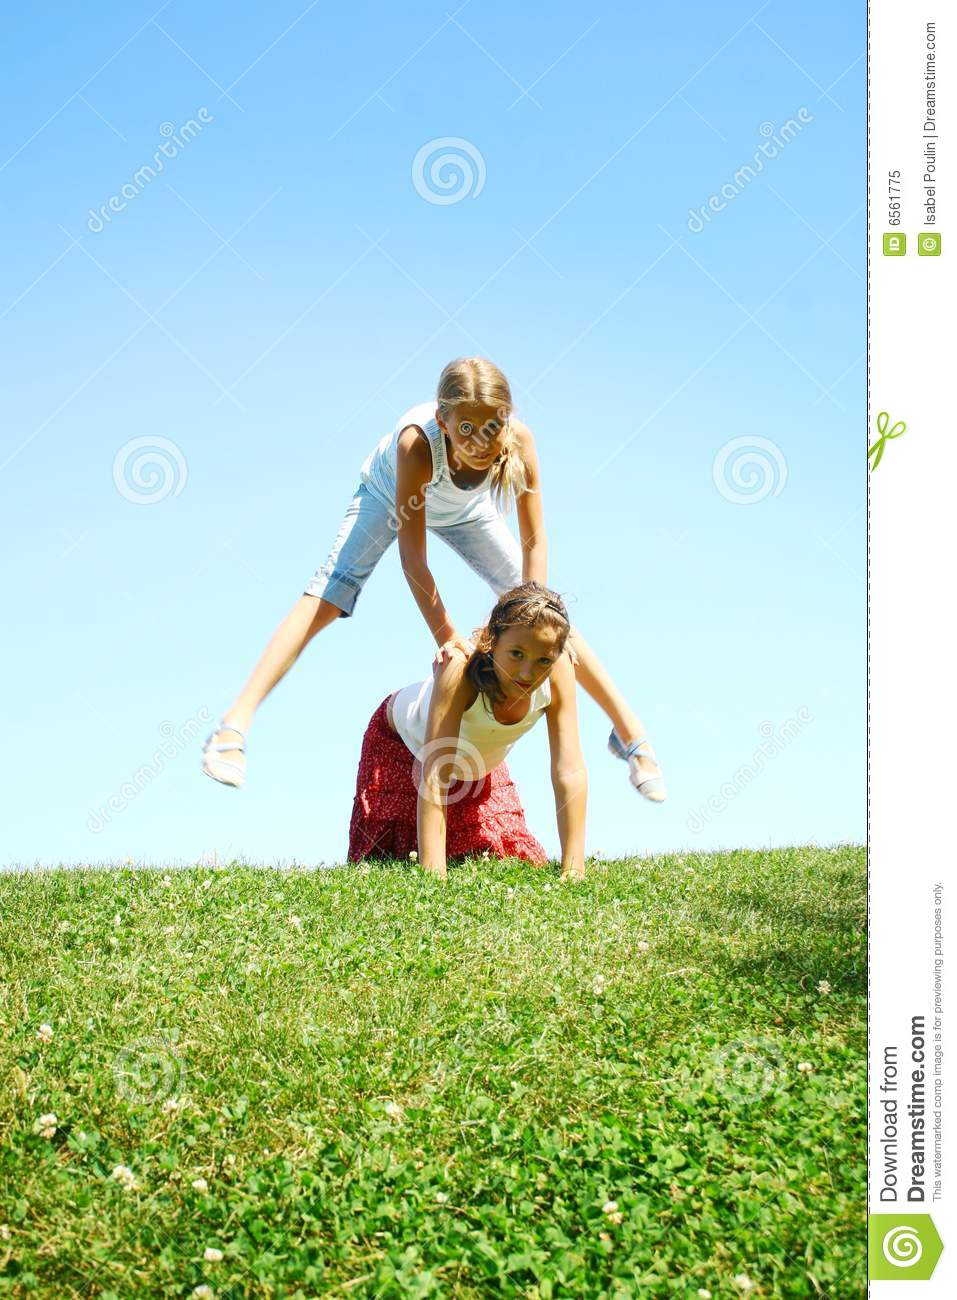 Children Playing Leapfrog Royalty Free Stock Photo - Image: 6561775